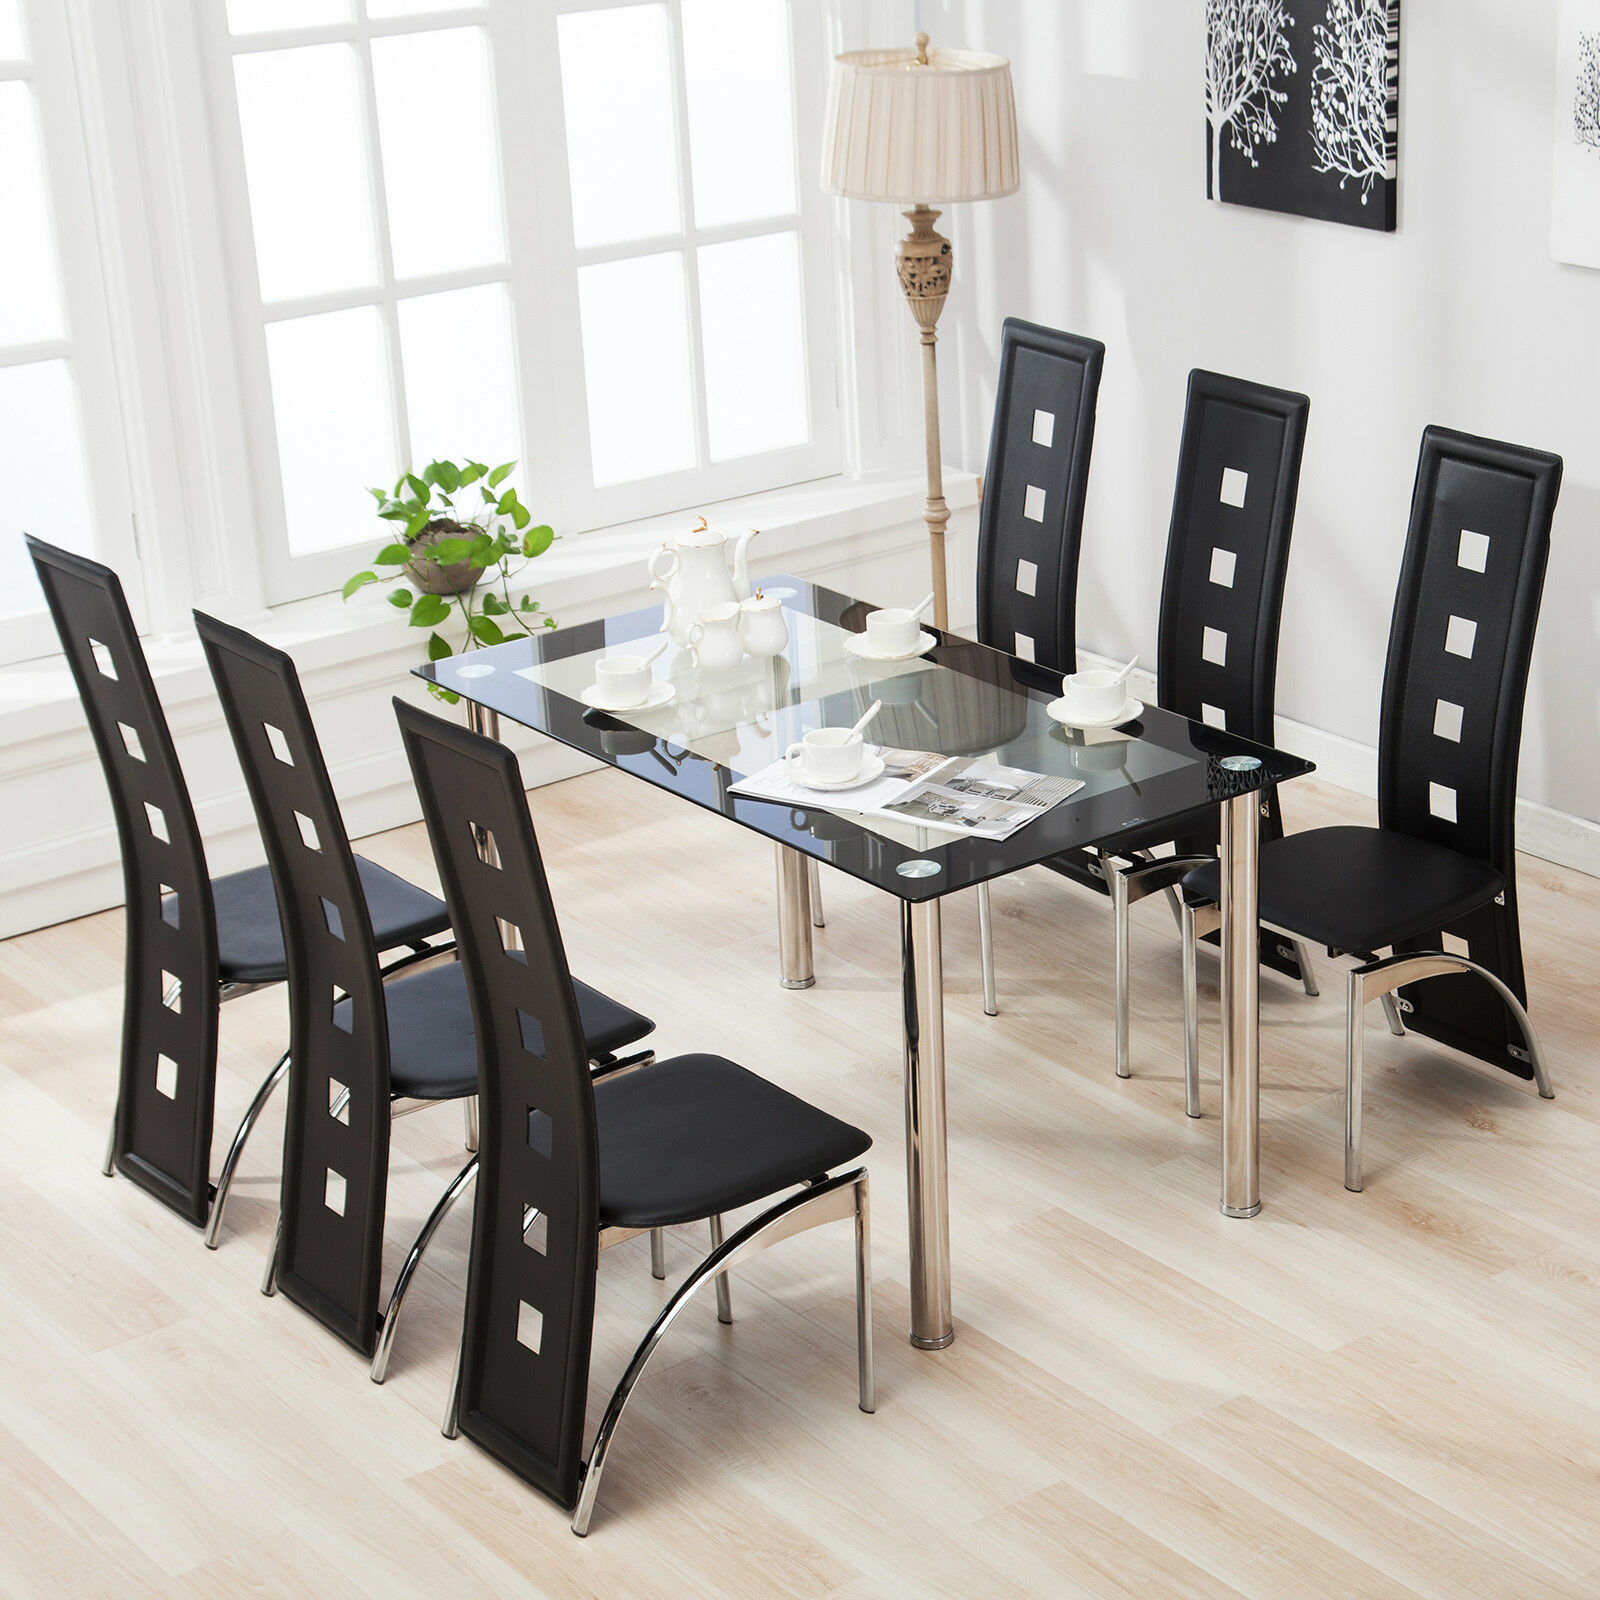 Dining Room Chair Sets Details About Glass Dining Table And 6 Chair Set With Chrome Legs Dining Room Furniture Black